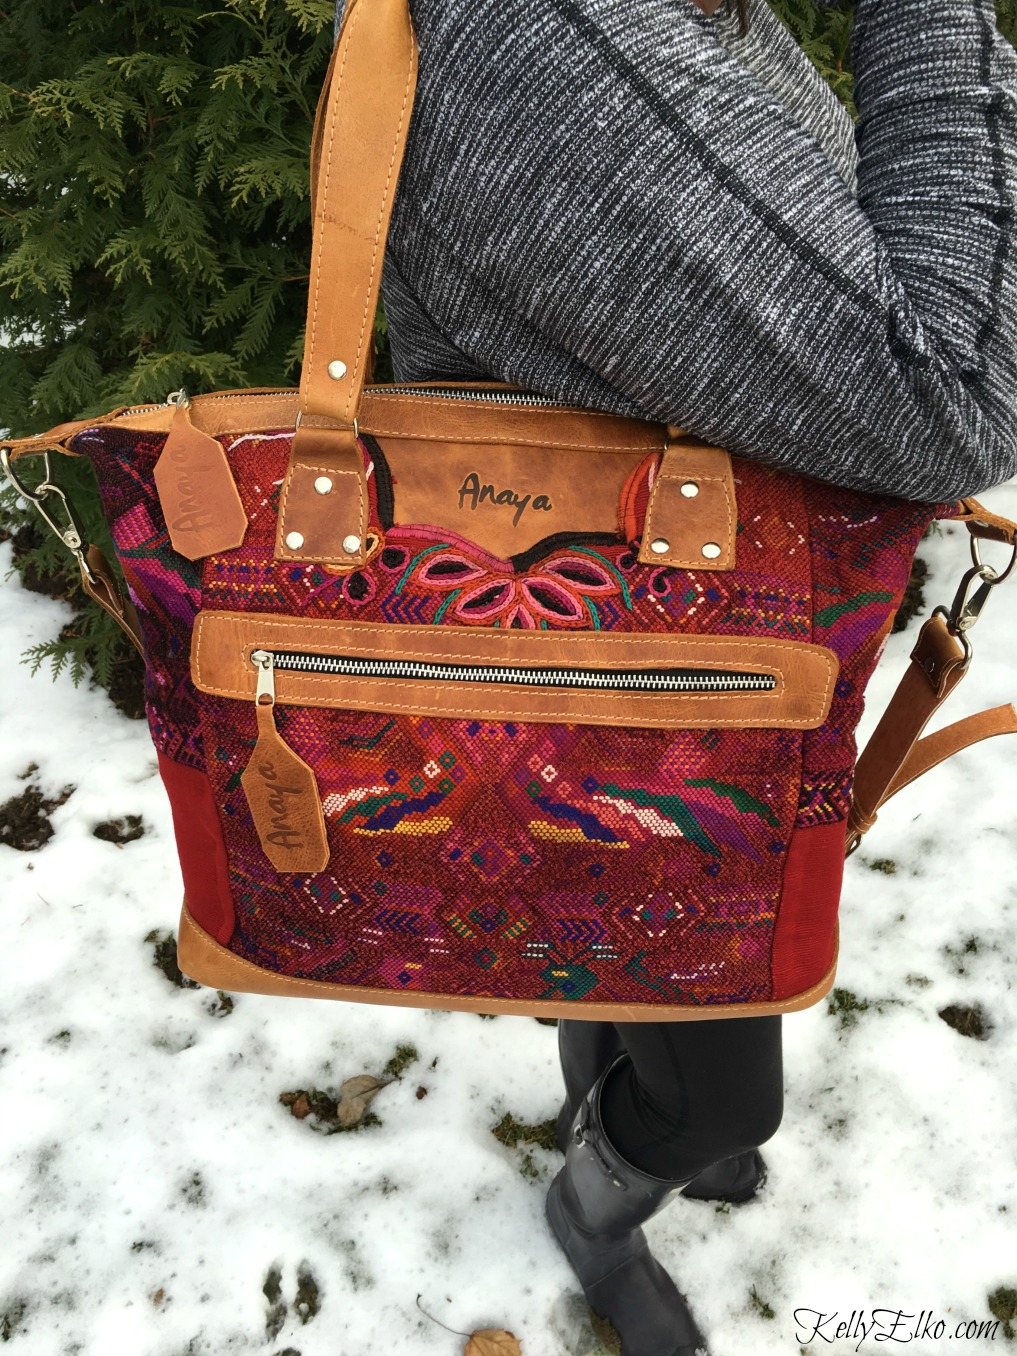 Anaya Camera Bag with Vintage Fabric - makes the perfect purse kellyelko.com